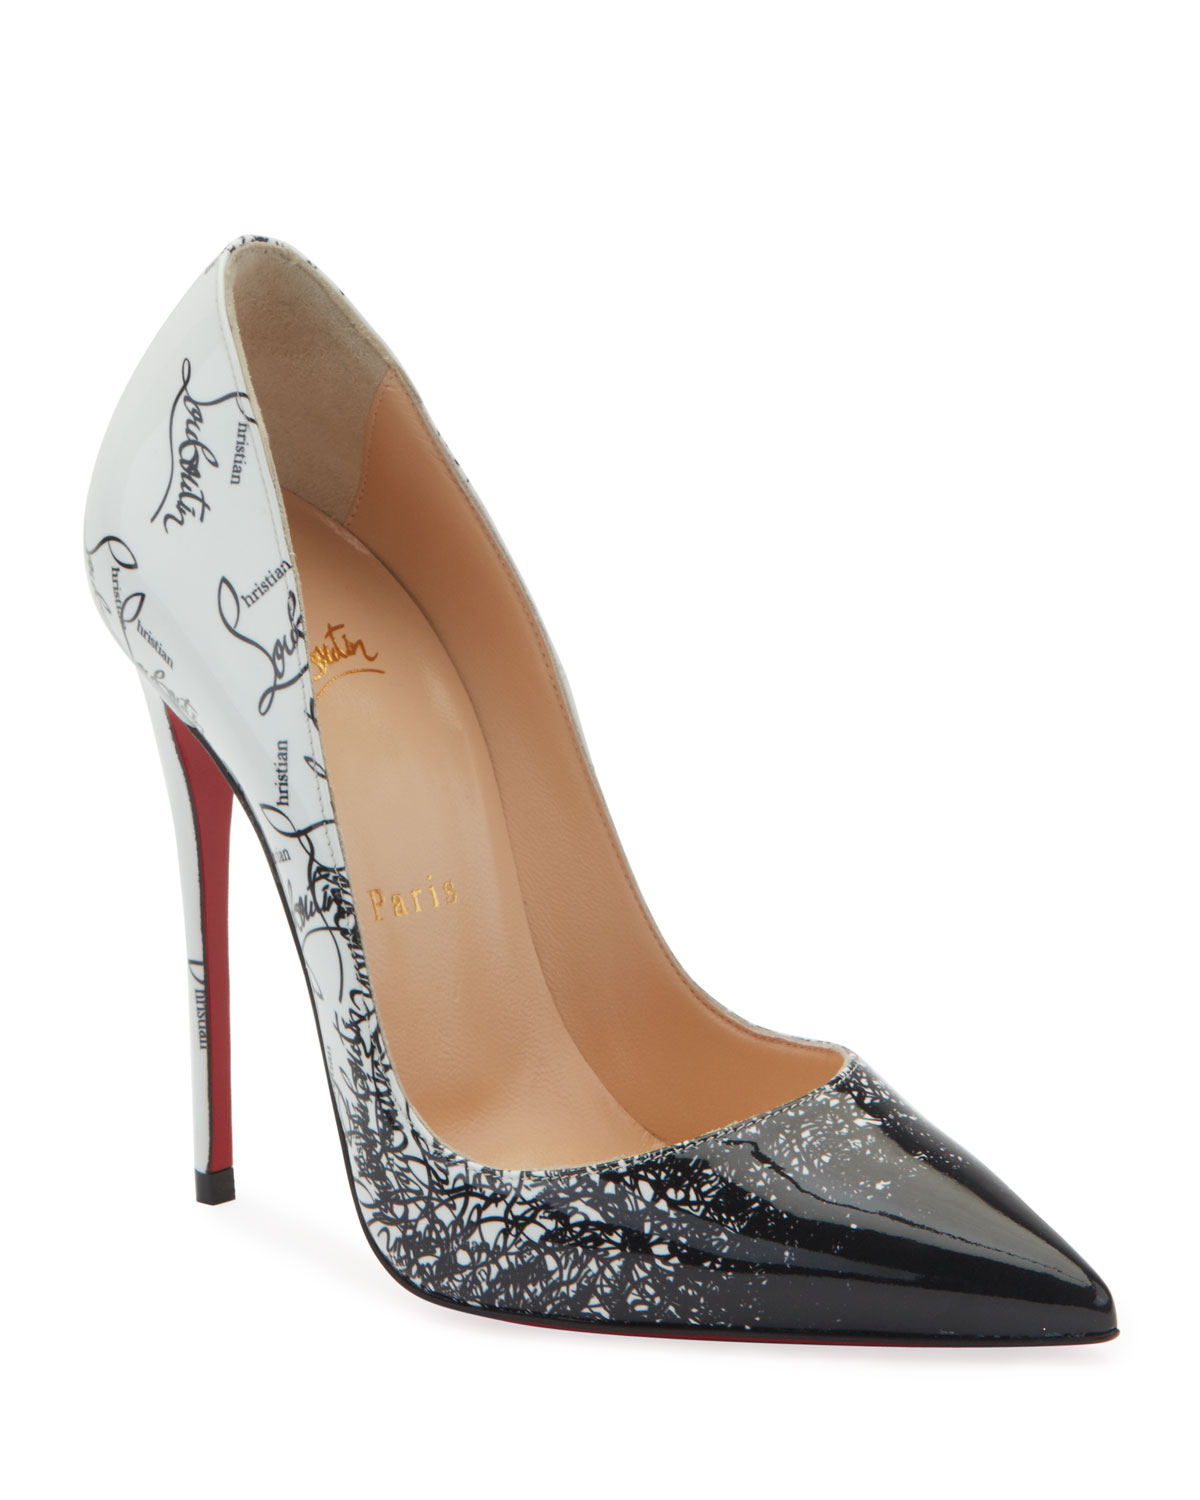 low priced 3554f 8d16d So Kate 120mm Patent Degraloubi Red Sole Pumps